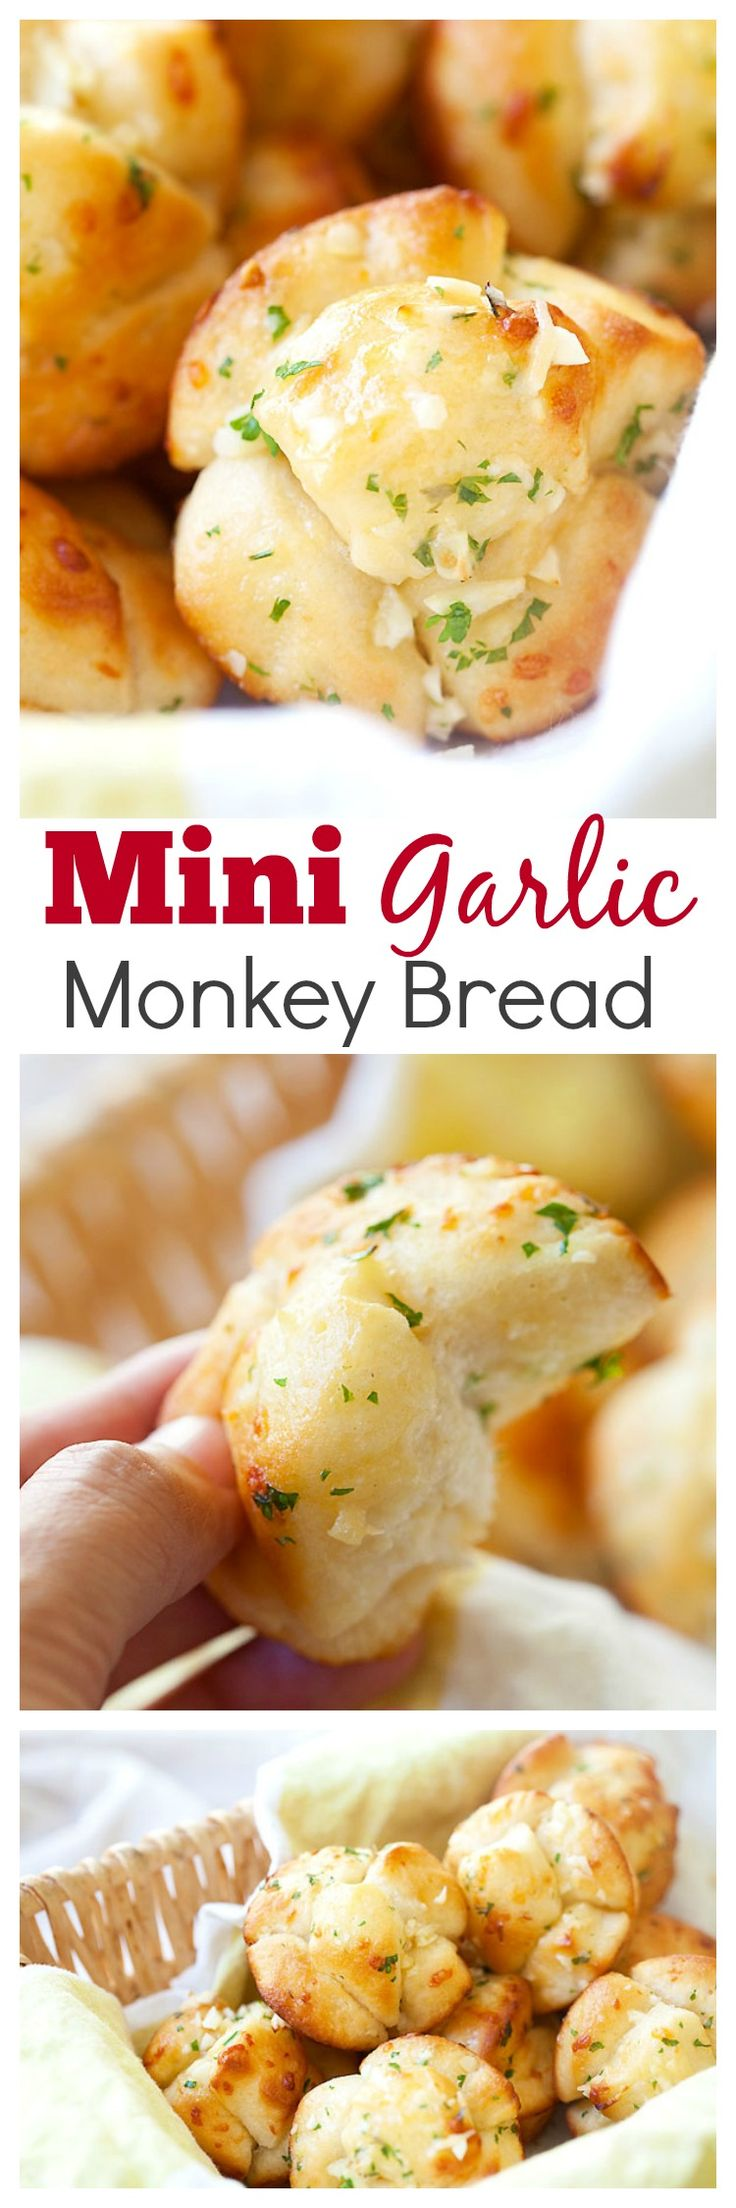 Mini Garlic Monkey Bread ~ using refrigerated biscuit dough and garlic herb butter | rasamalaysia.com